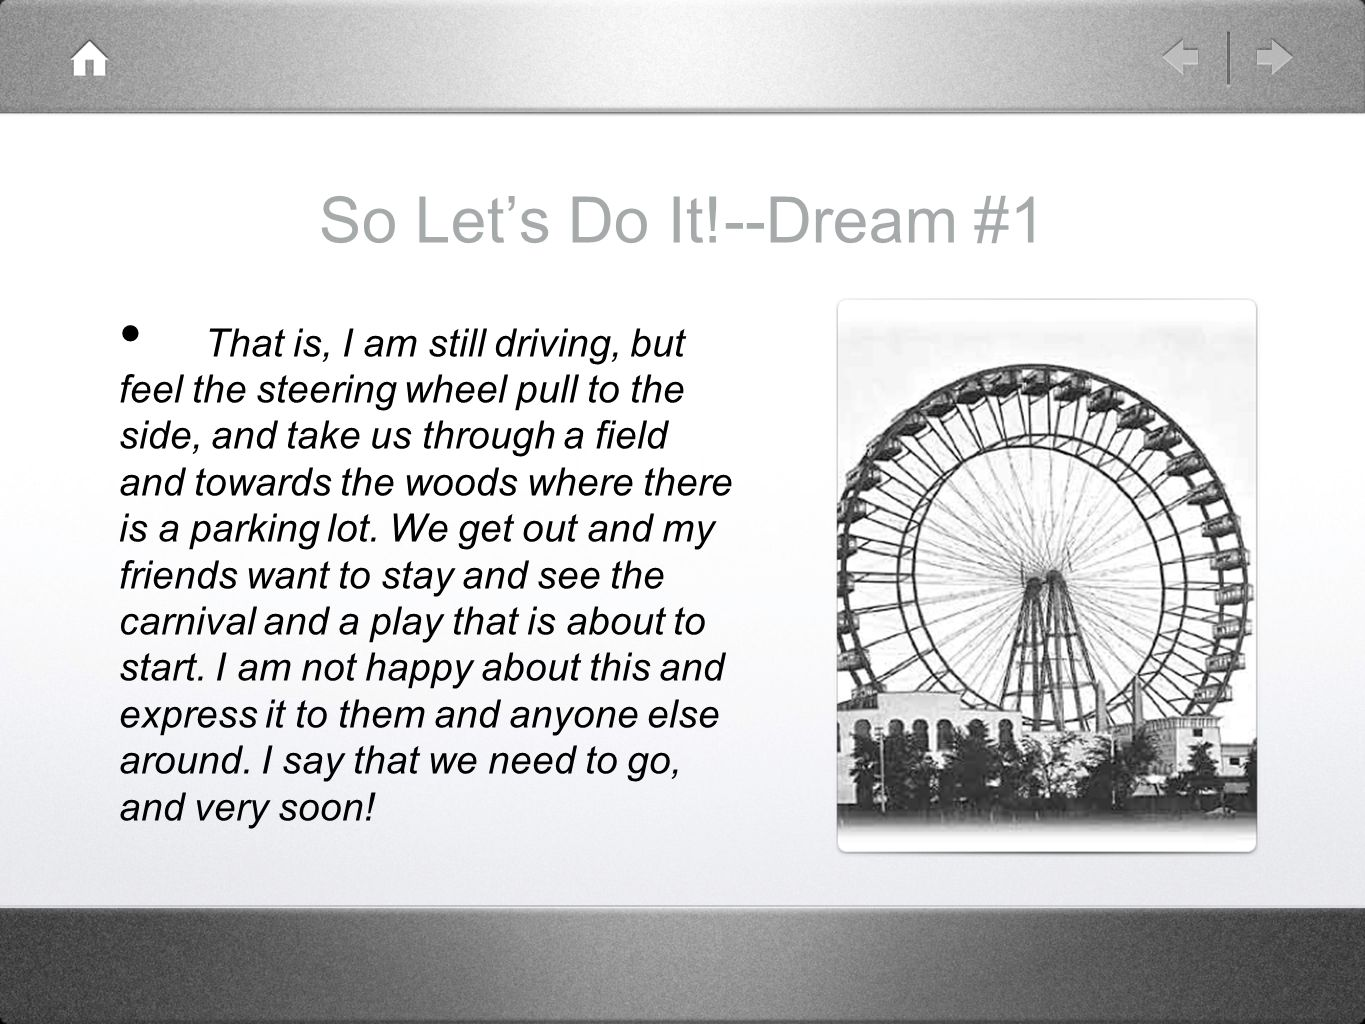 So Let's Do It!--Dream #1 That is, I am still driving, but feel the steering wheel pull to the side, and take us through a field and towards the woods where there is a parking lot.